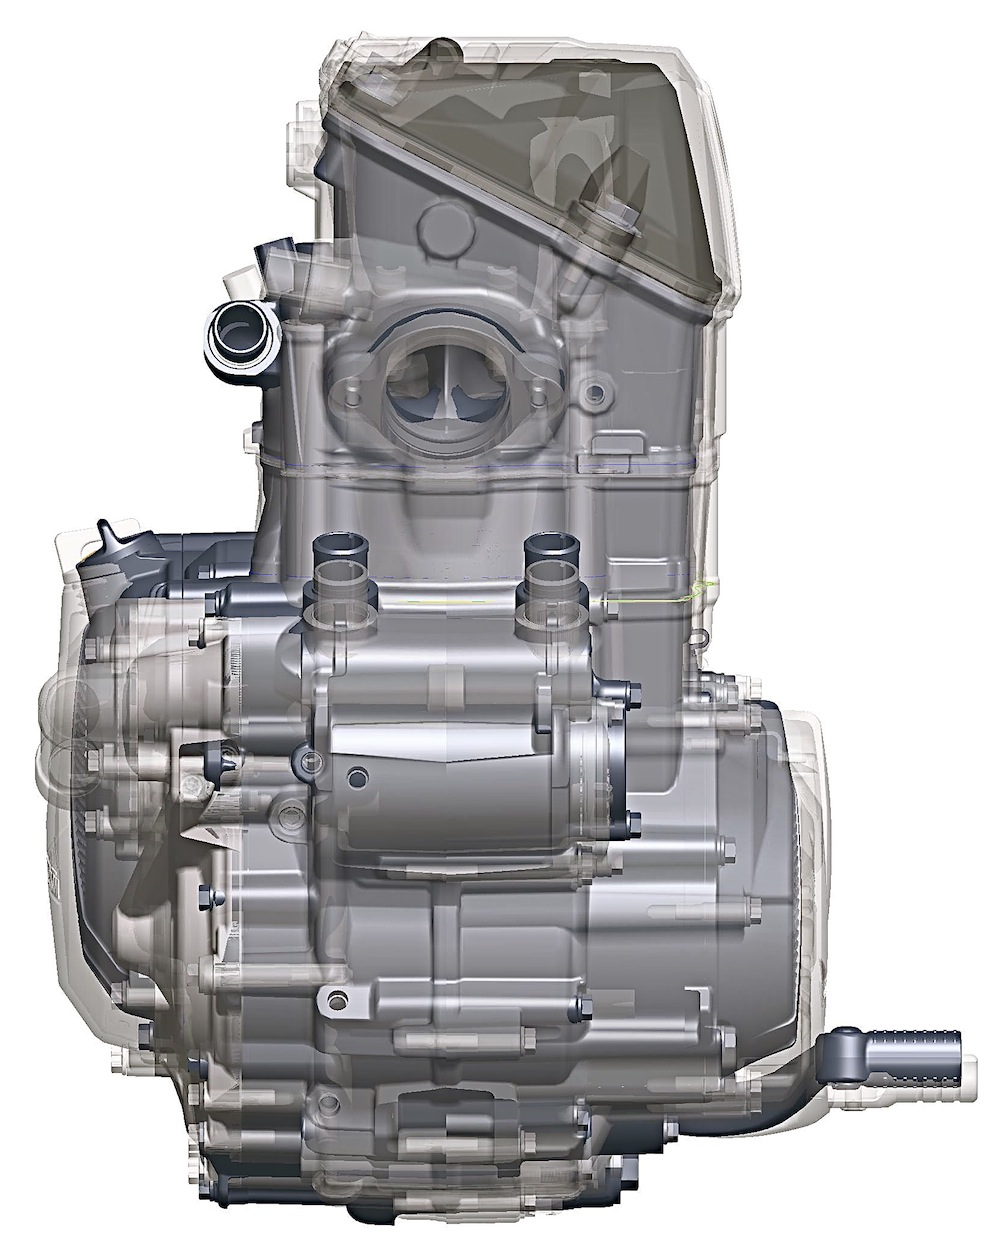 450cc Engine Diagram Product Wiring Diagrams Ktm Images Gallery